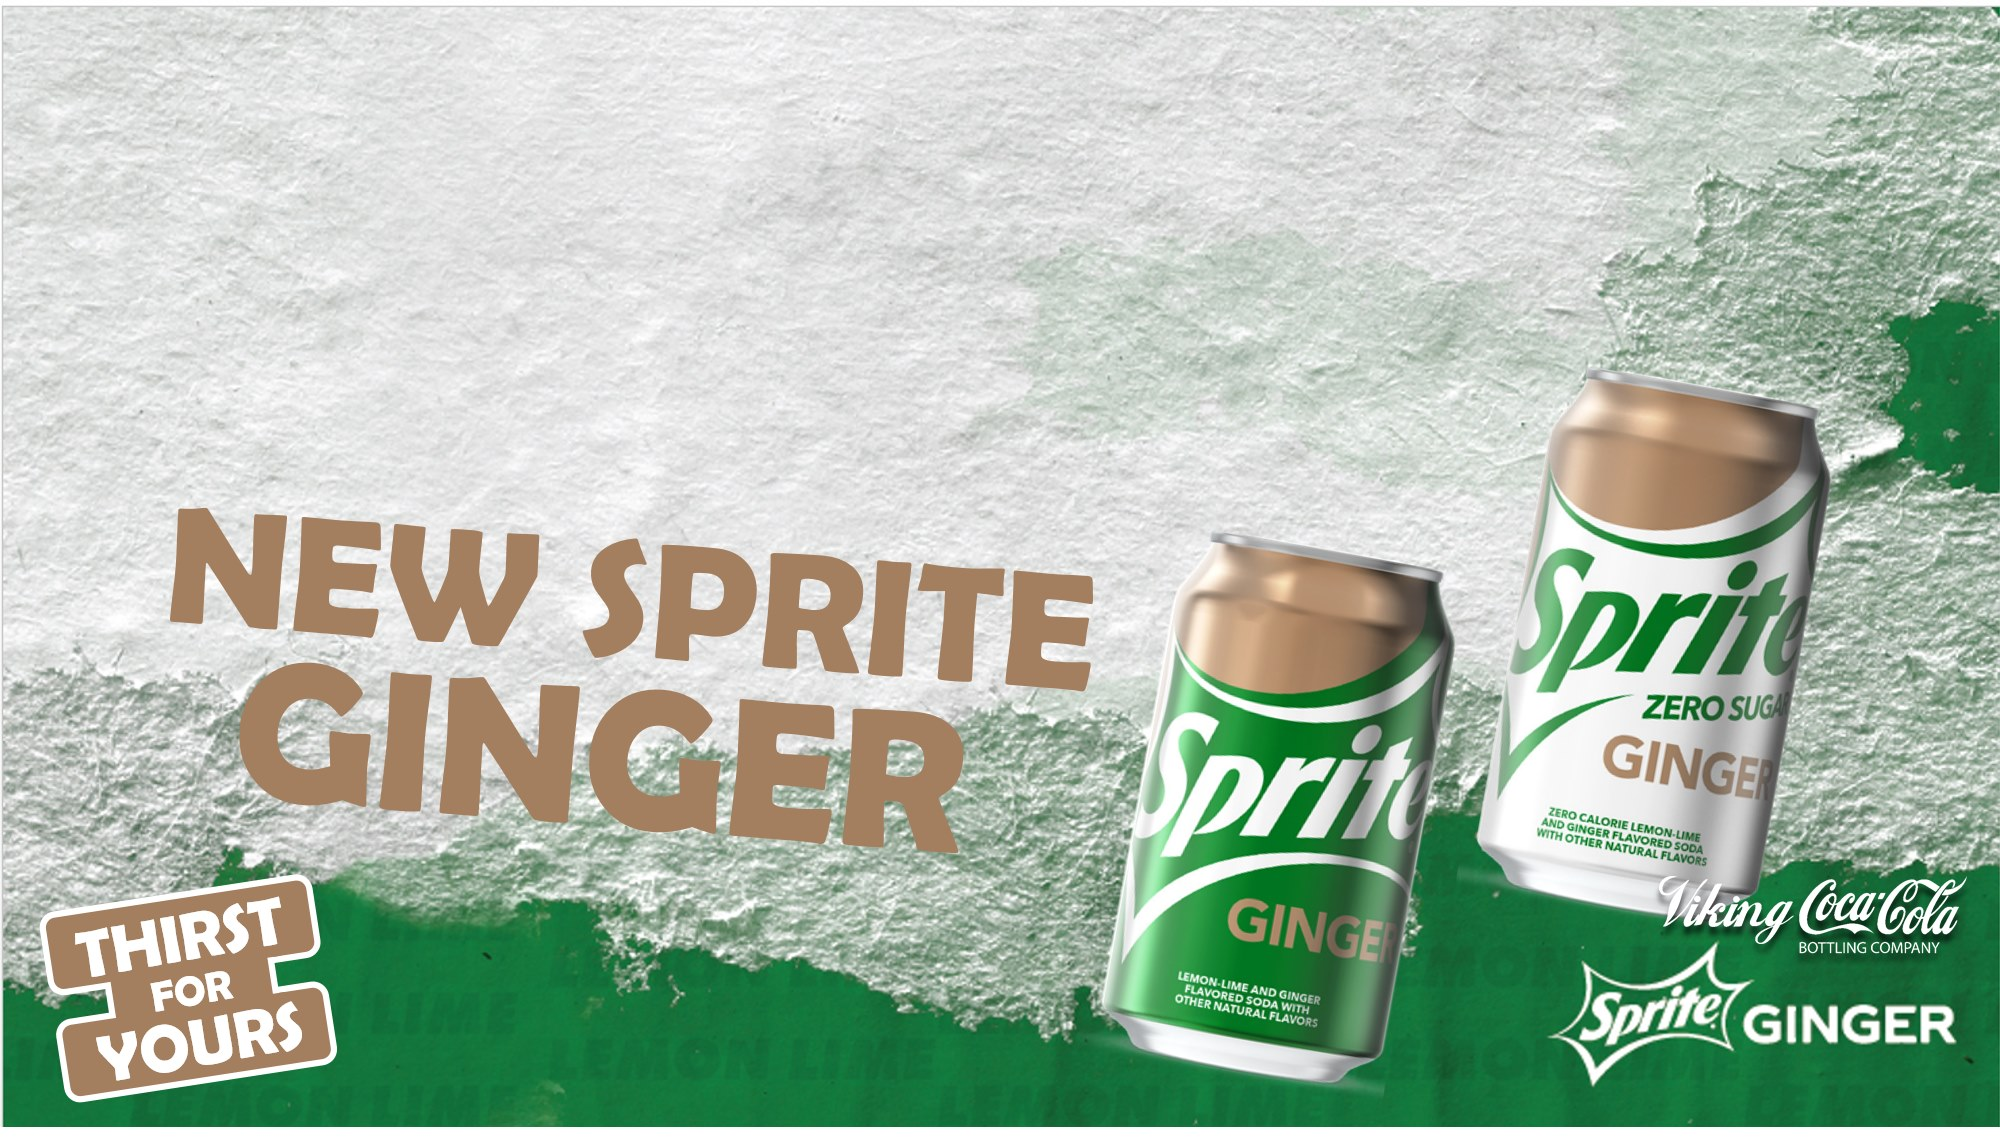 Where To Buy Sprite Ginger - best vegan soup recipes instant